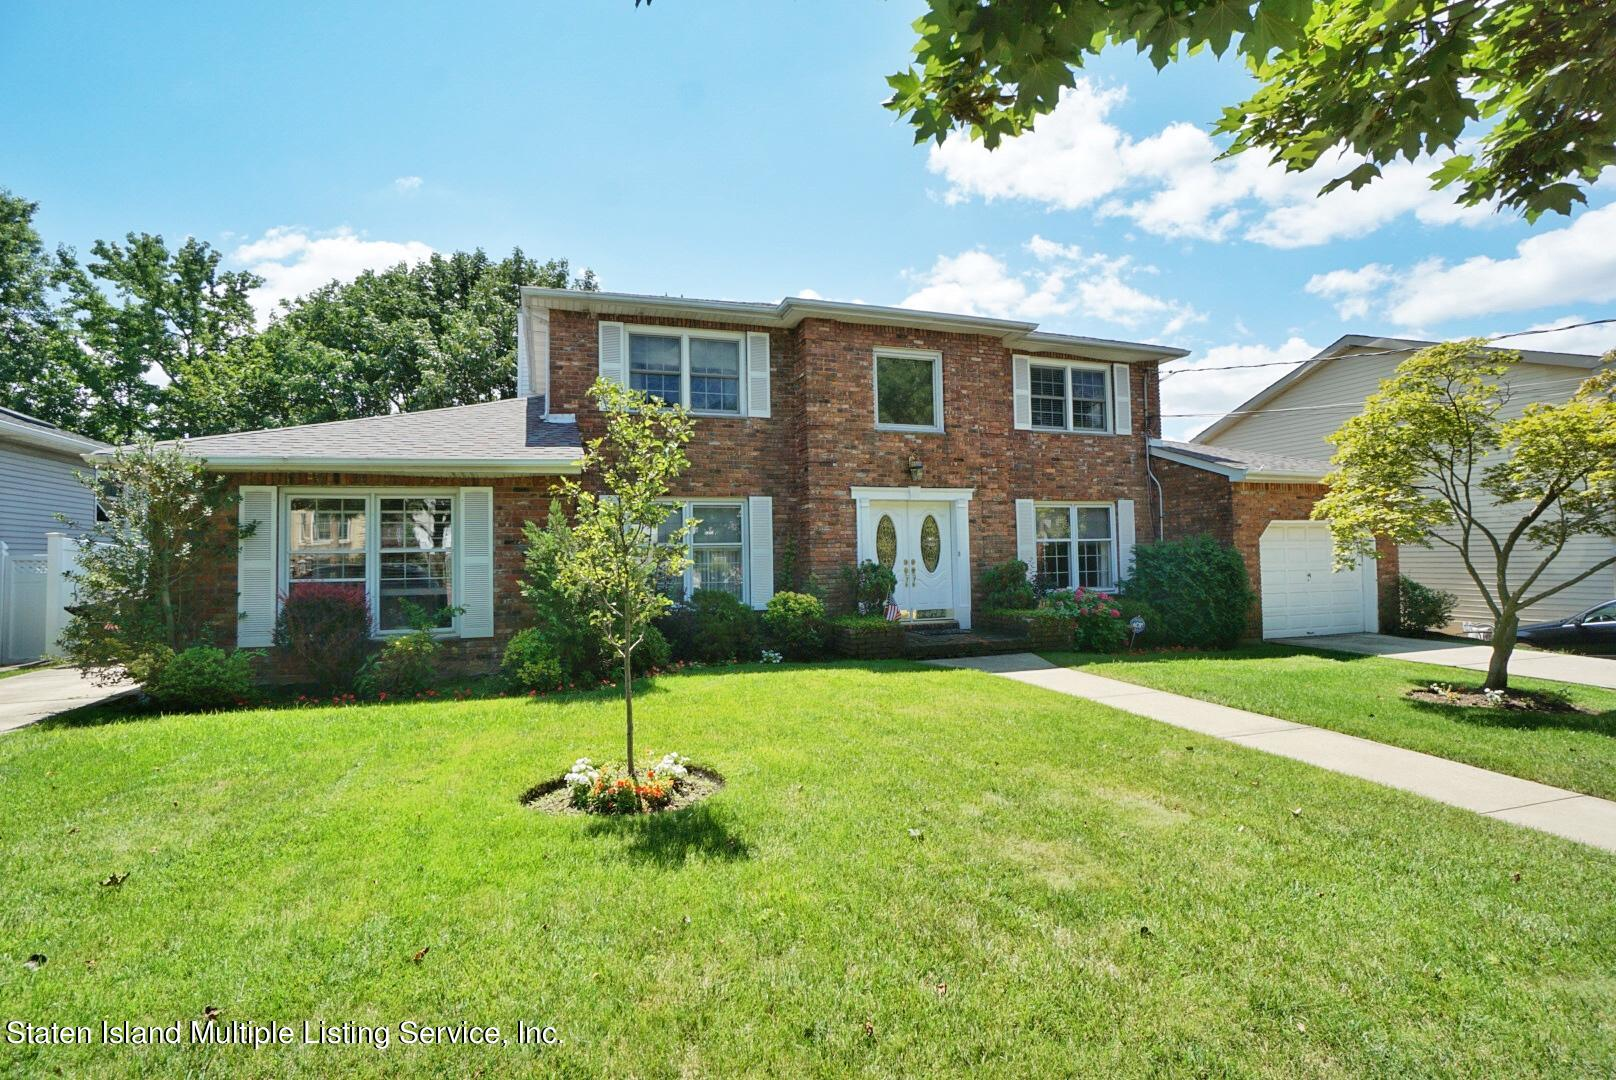 Two Family - Detached 524 Lamont Avenue  Staten Island, NY 10312, MLS-1148319-2